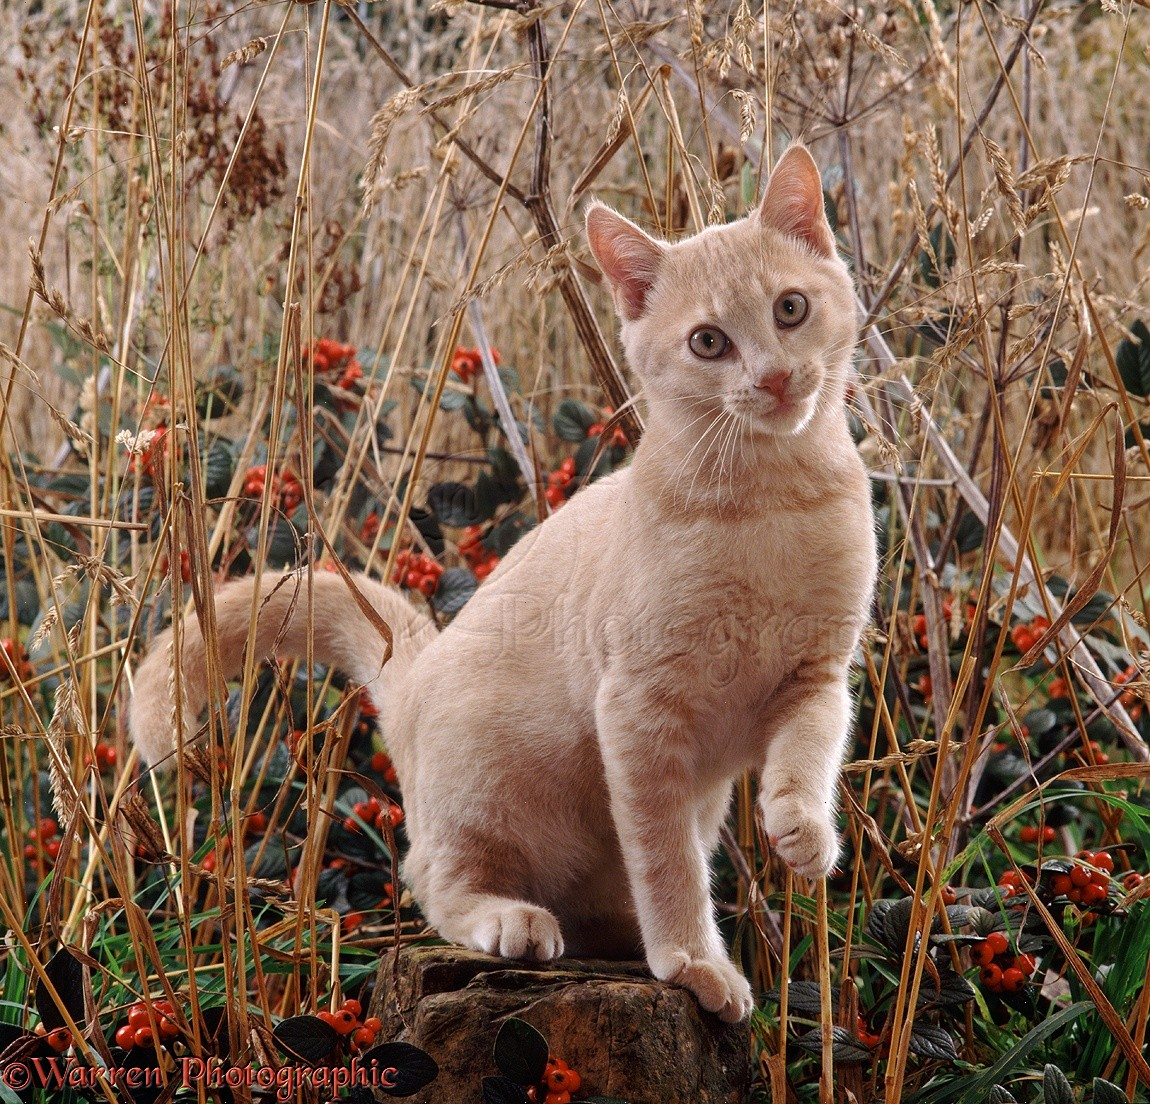 Cream Cat Among Dead Grass And Berries Photo WP11422